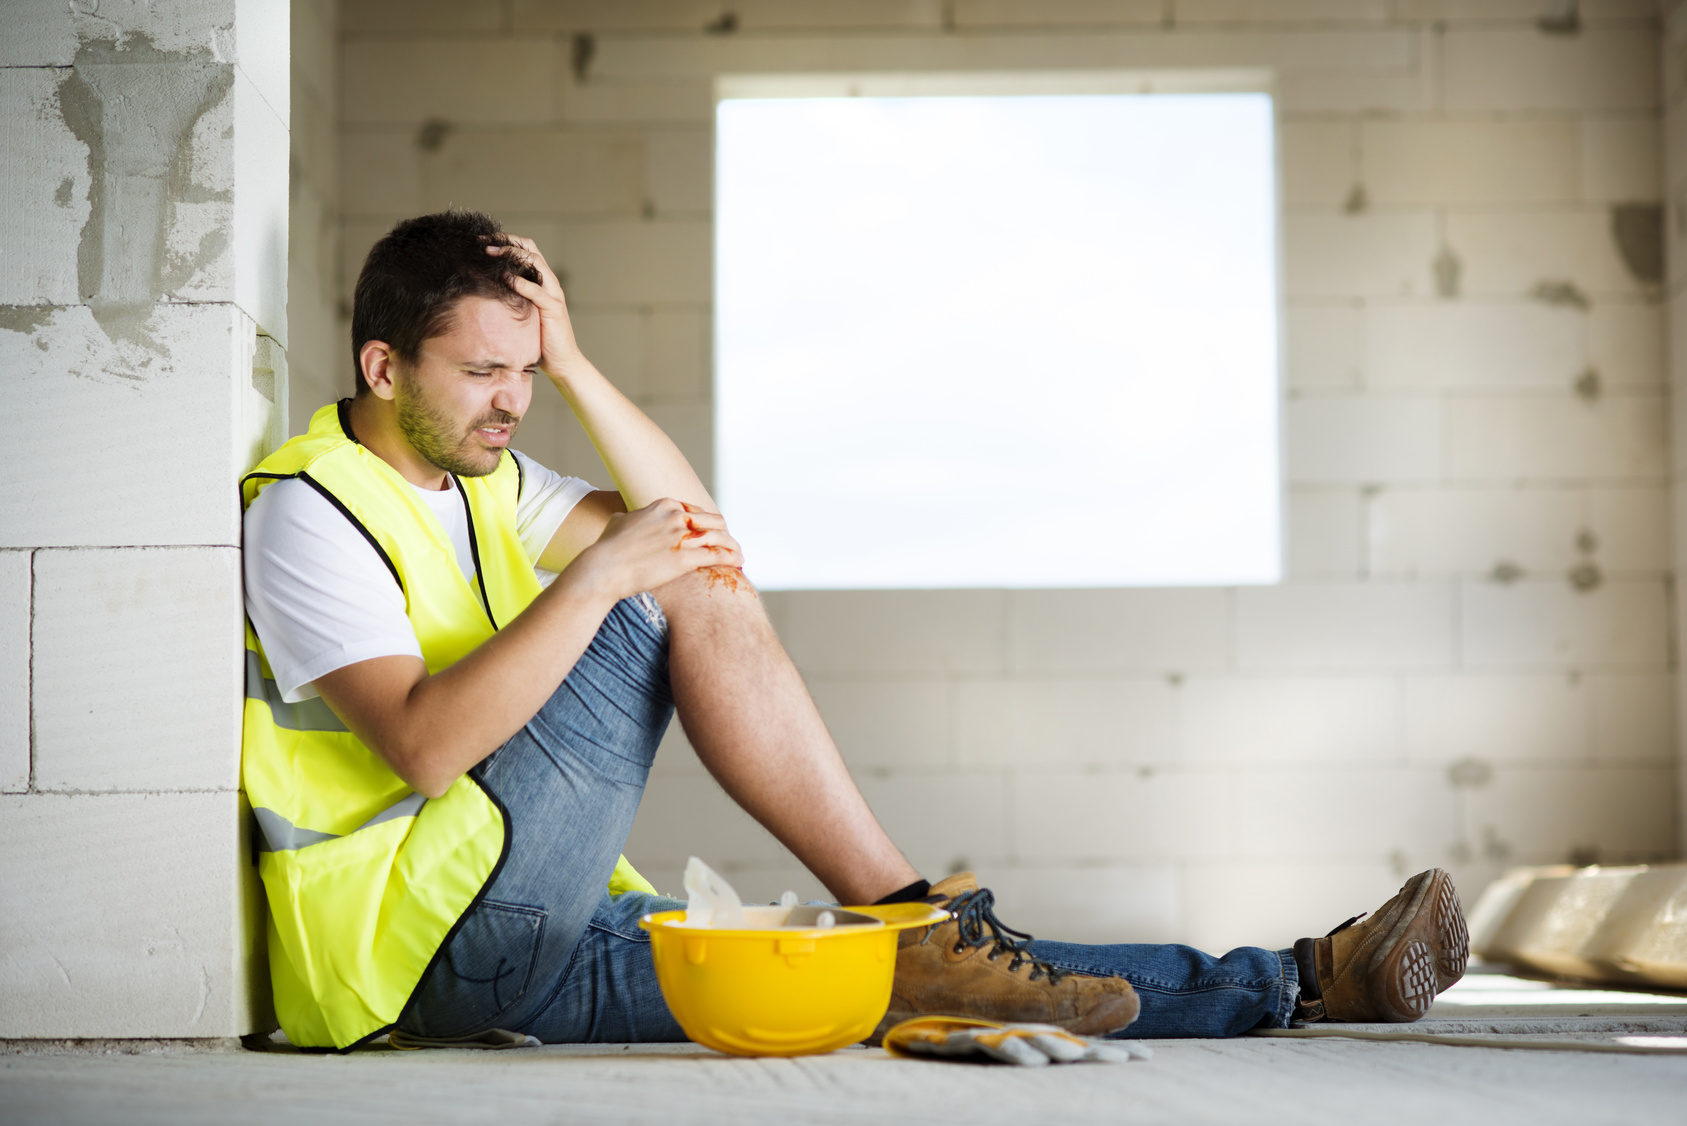 Image Result For Work Accident Injury